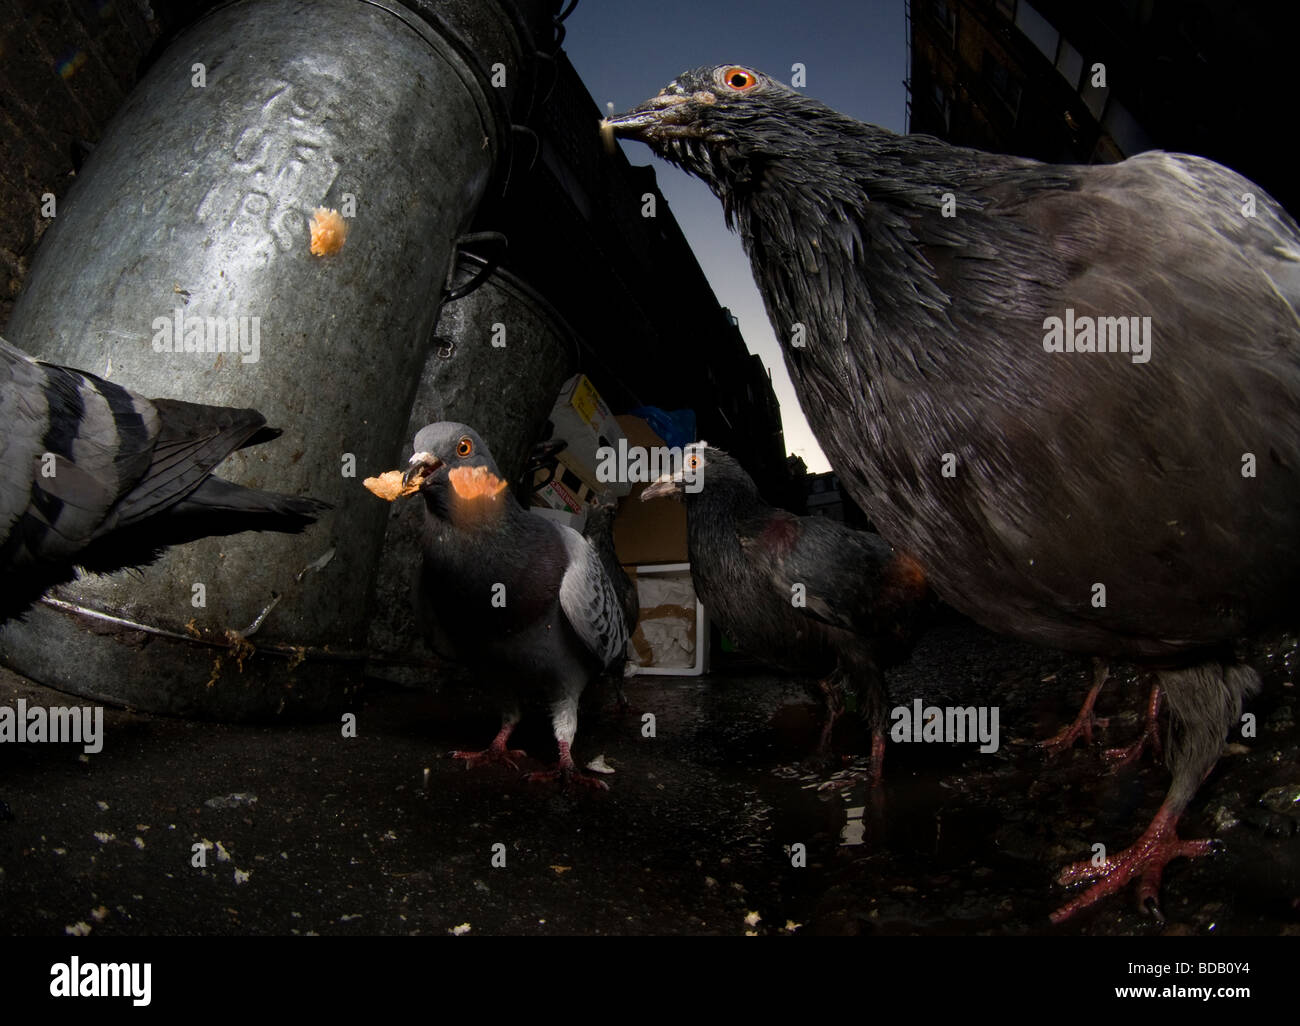 Pigeons feeding on scraps in a London backstreet, London - Stock Image